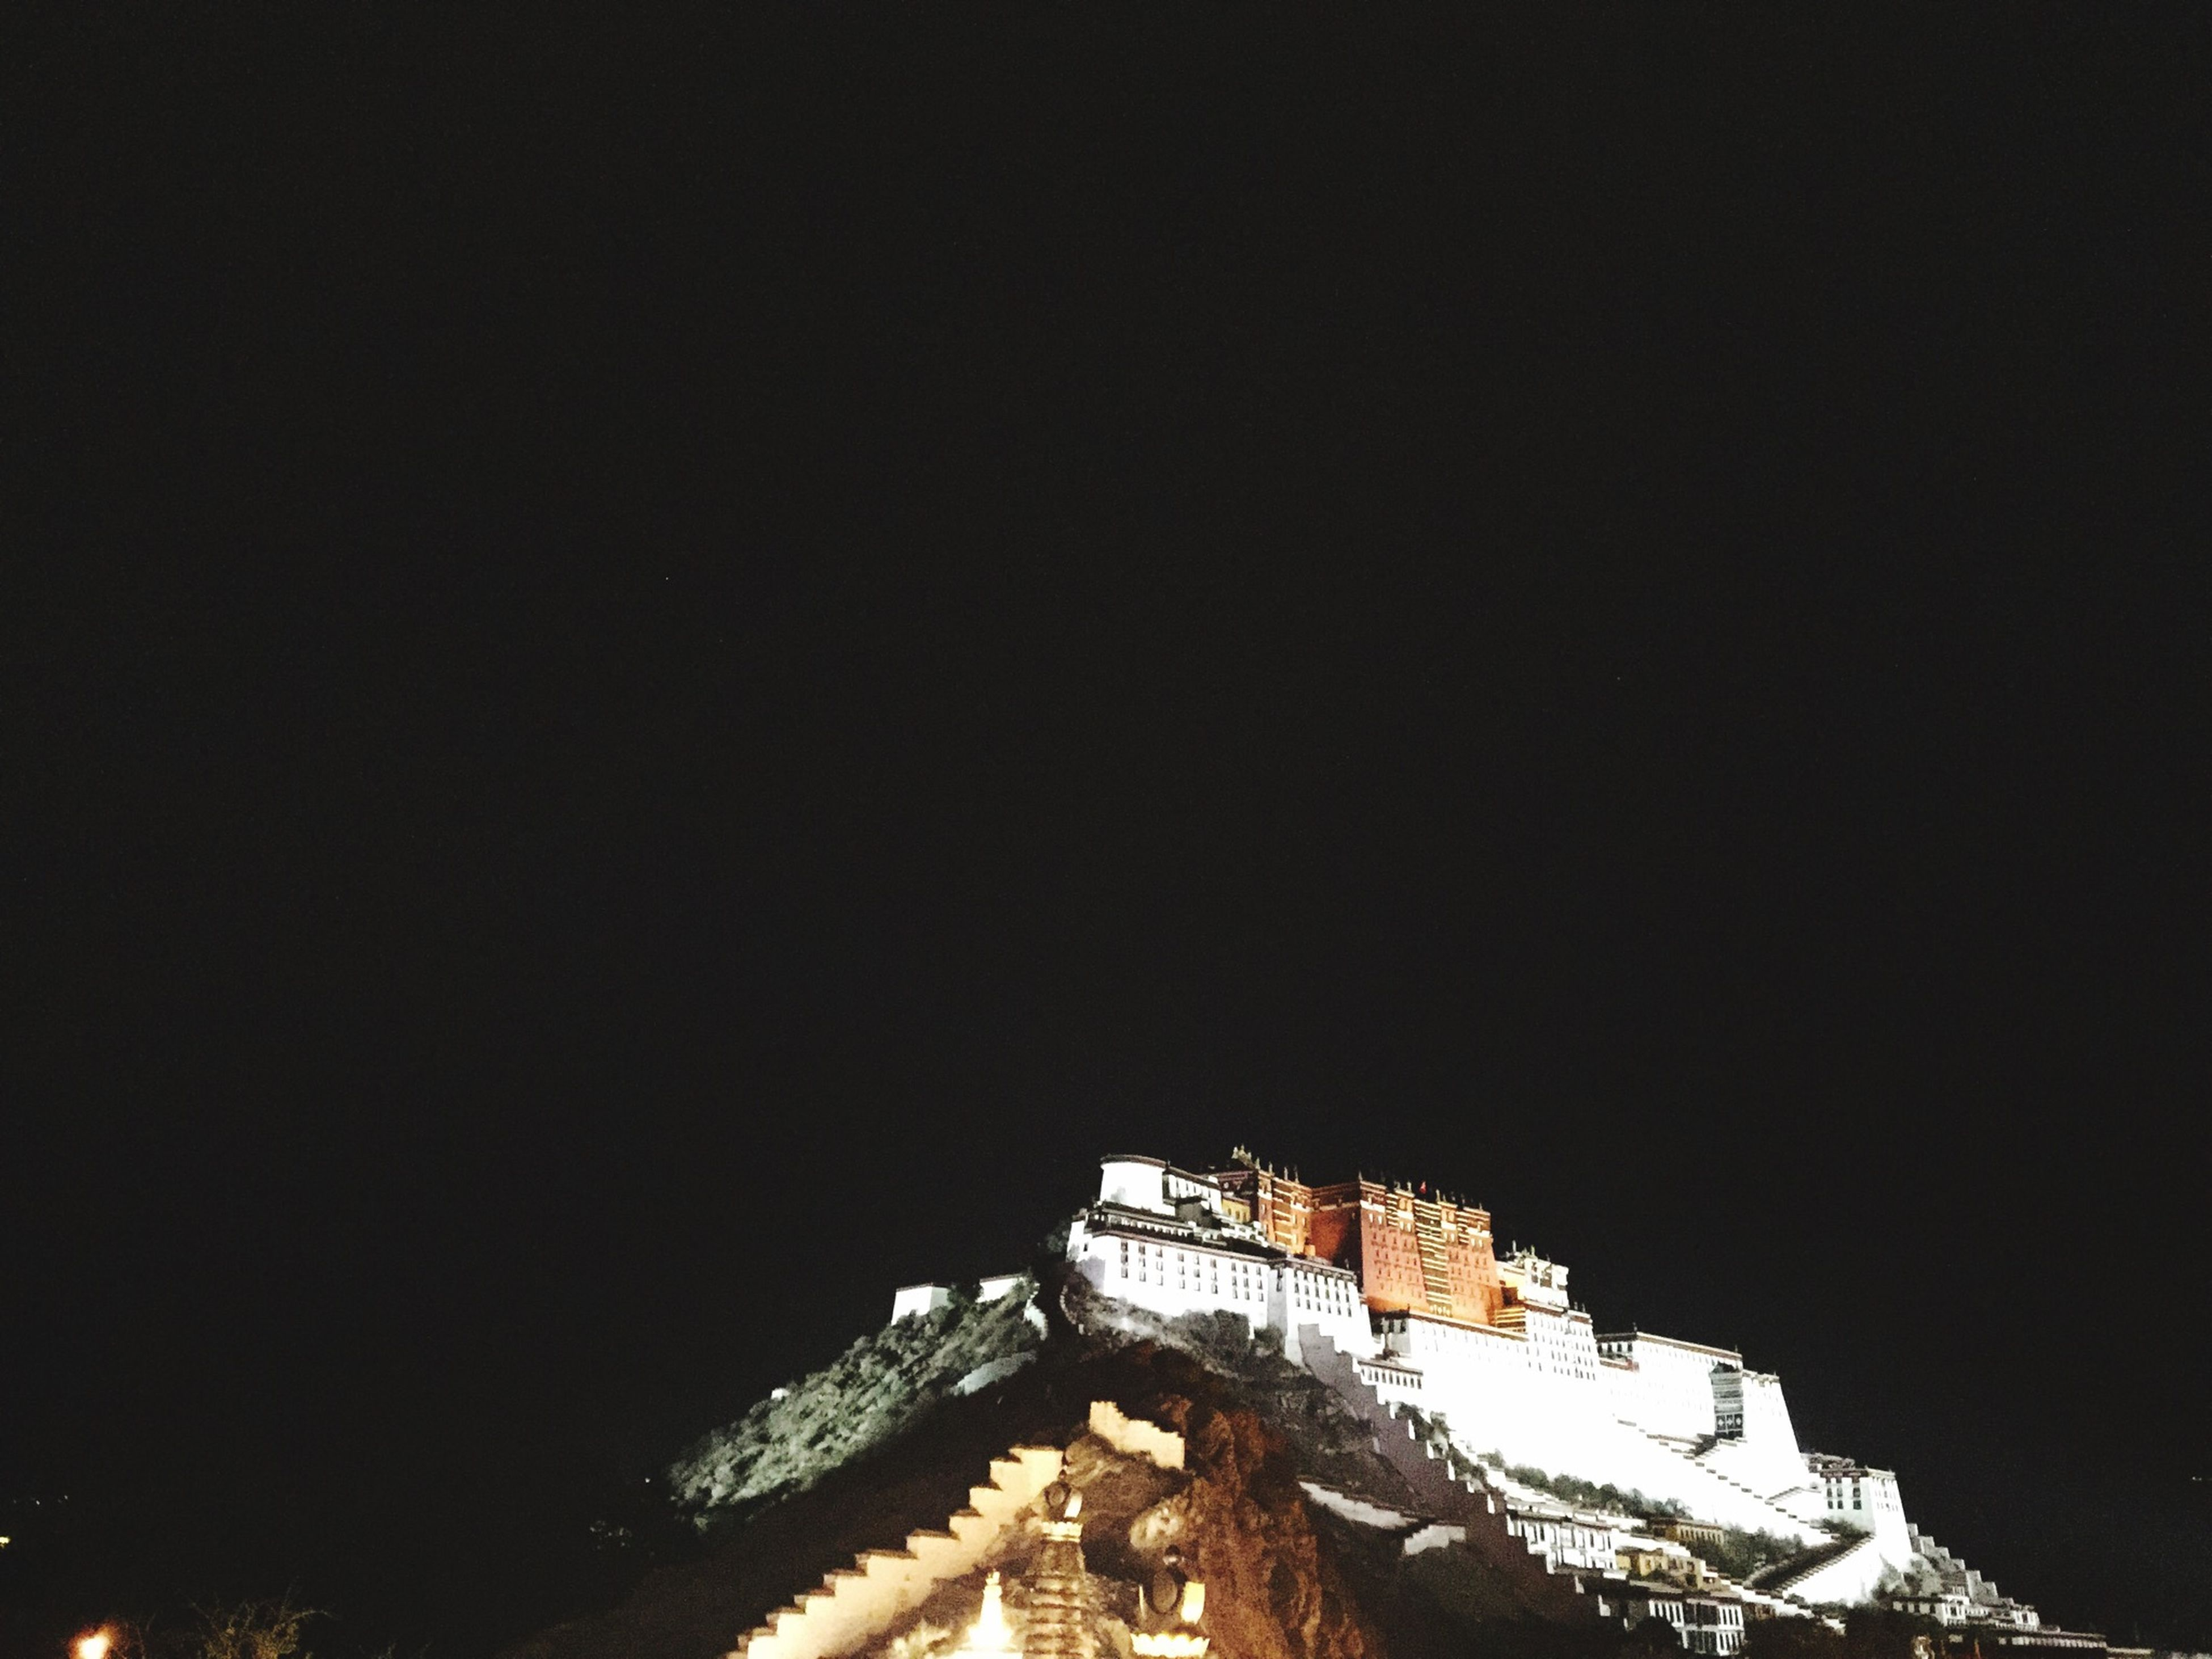 architecture, built structure, copy space, clear sky, building exterior, night, low angle view, outdoors, no people, high angle view, illuminated, sky, nature, house, building, high section, dusk, residential structure, travel destinations, mountain